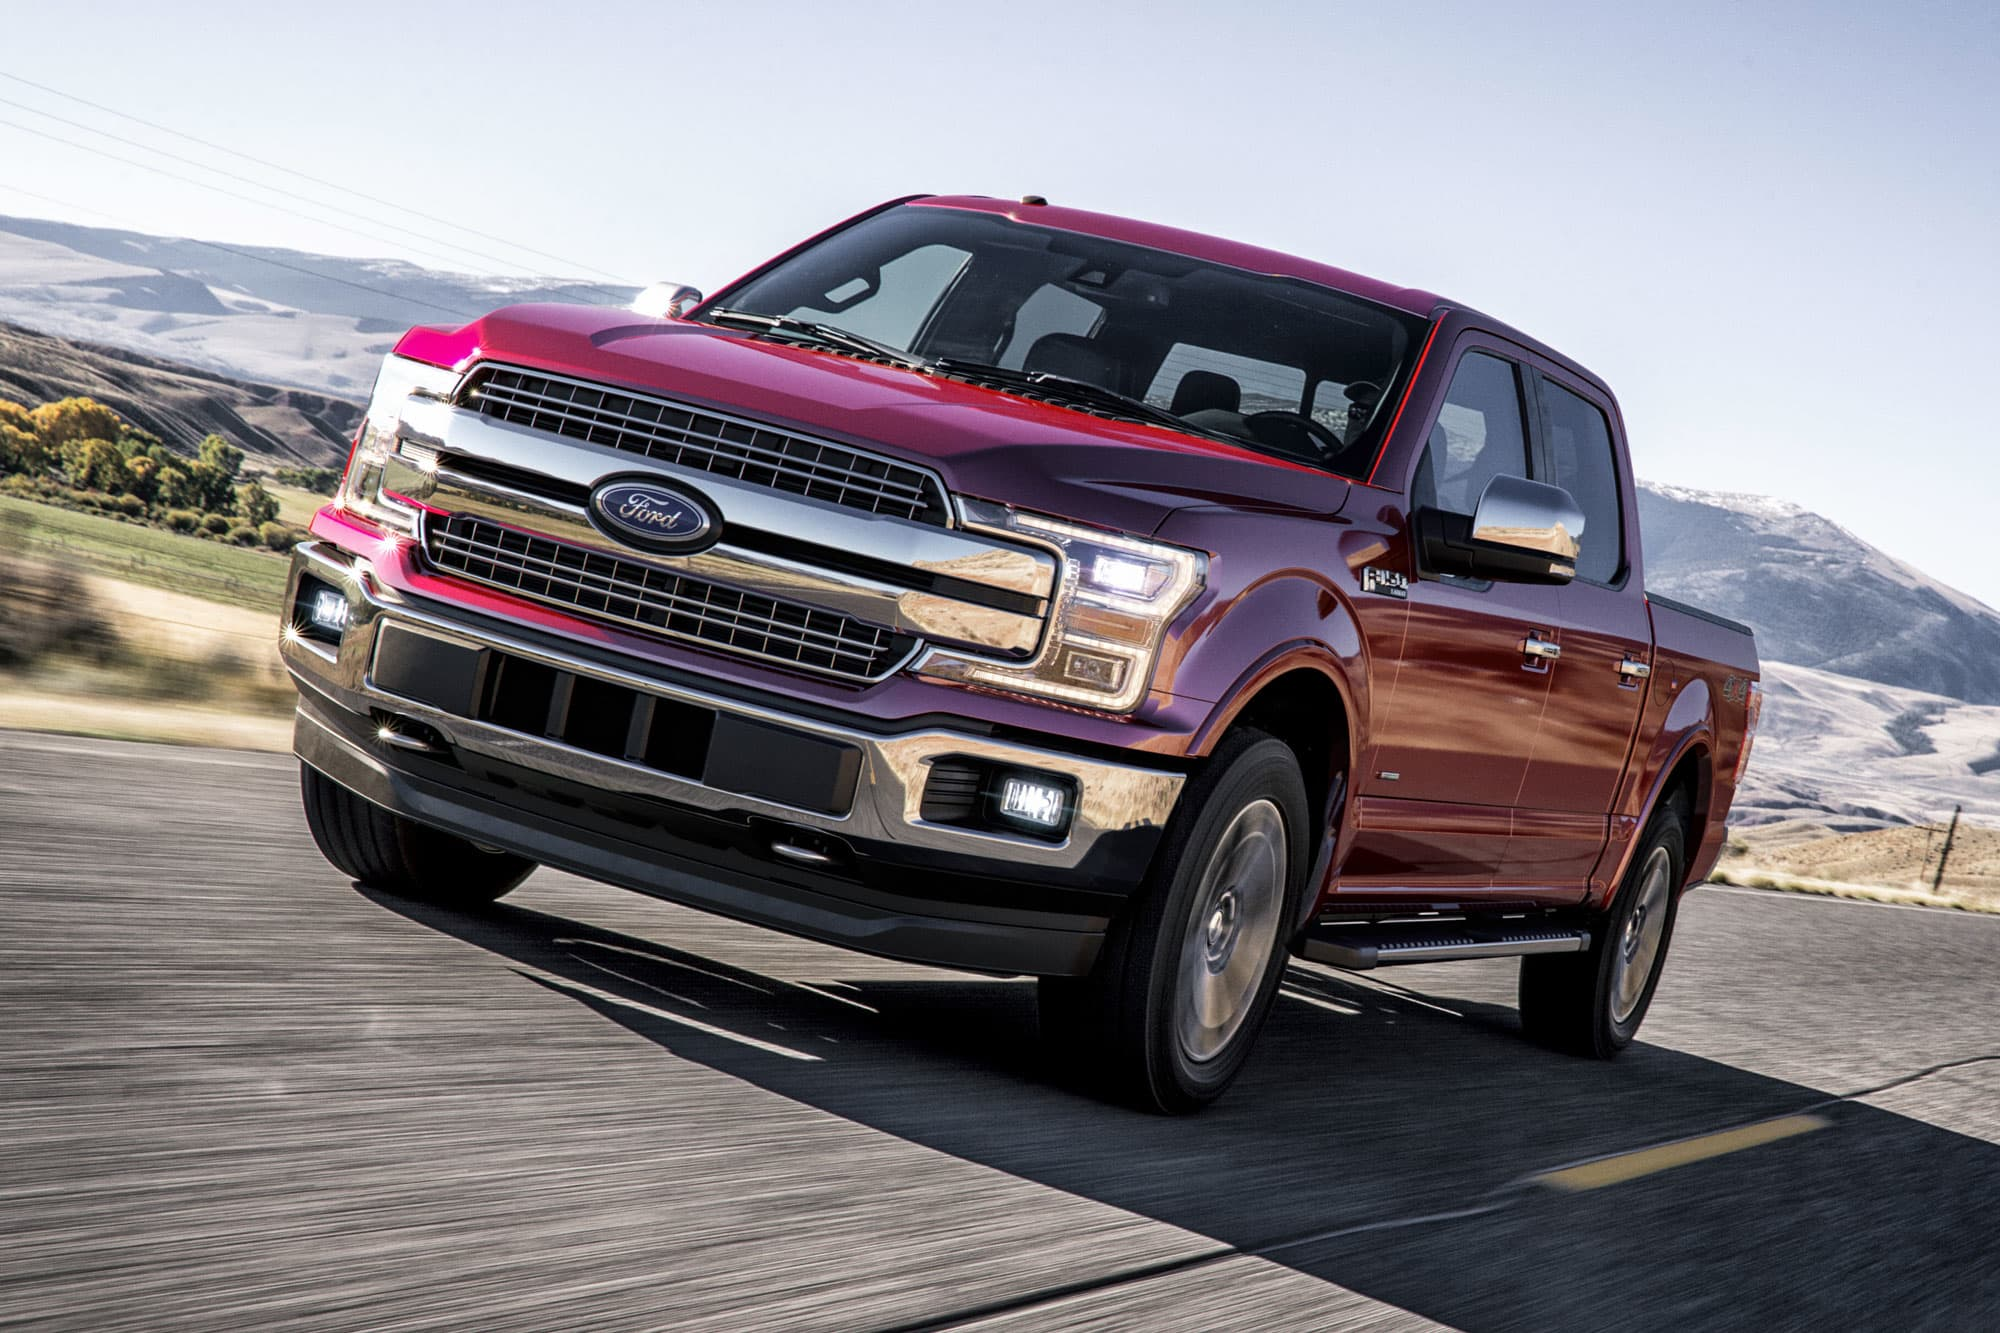 Ford recalls about 350,000 F-150s and Expeditions for faulty